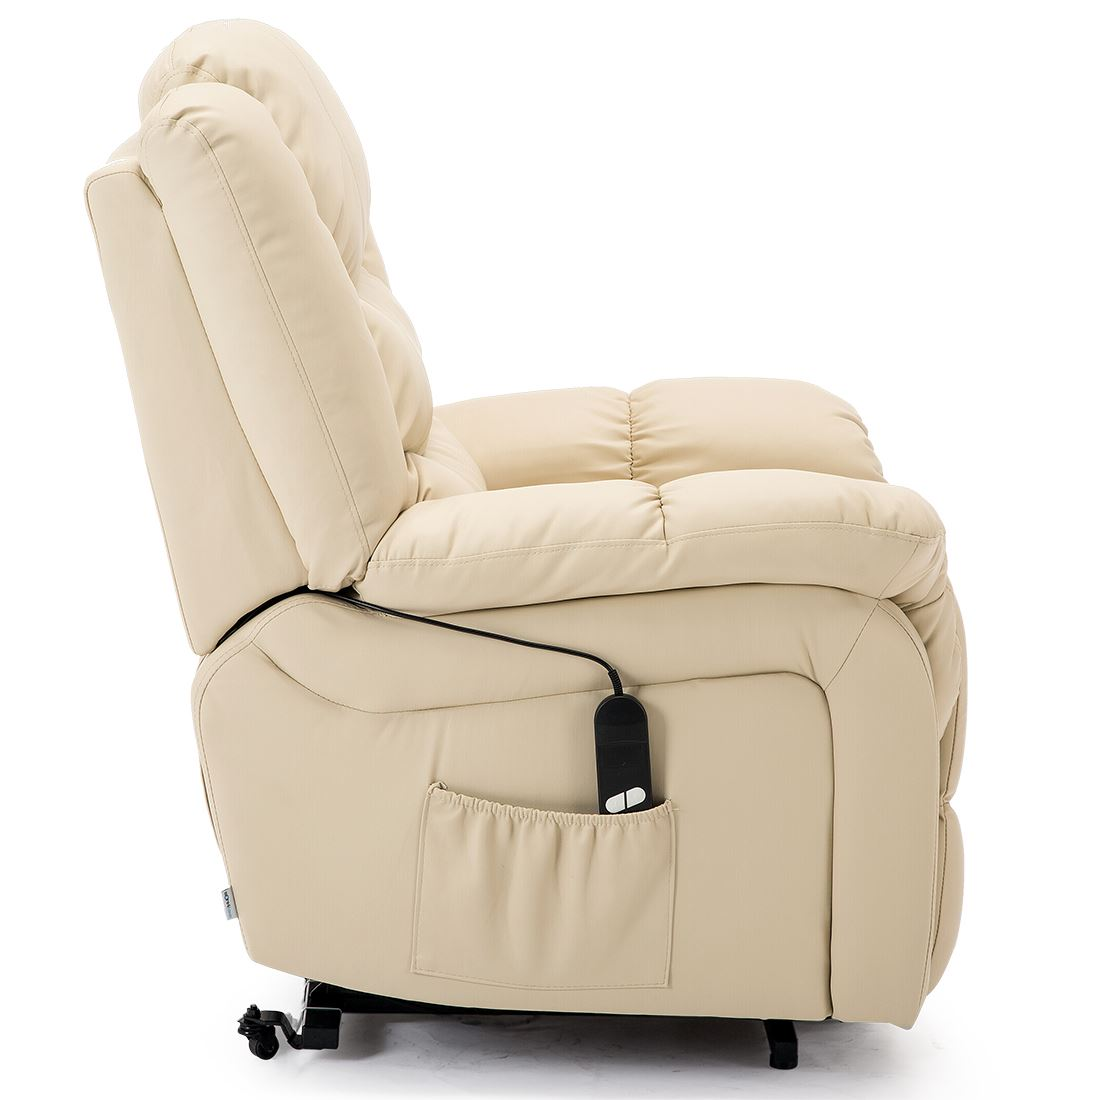 SEATTLE-ELECTRIC-RISE-REAL-LEATHER-RECLINER-ARMCHAIR-SOFA-HOME-LOUNGE-CHAIR thumbnail 26